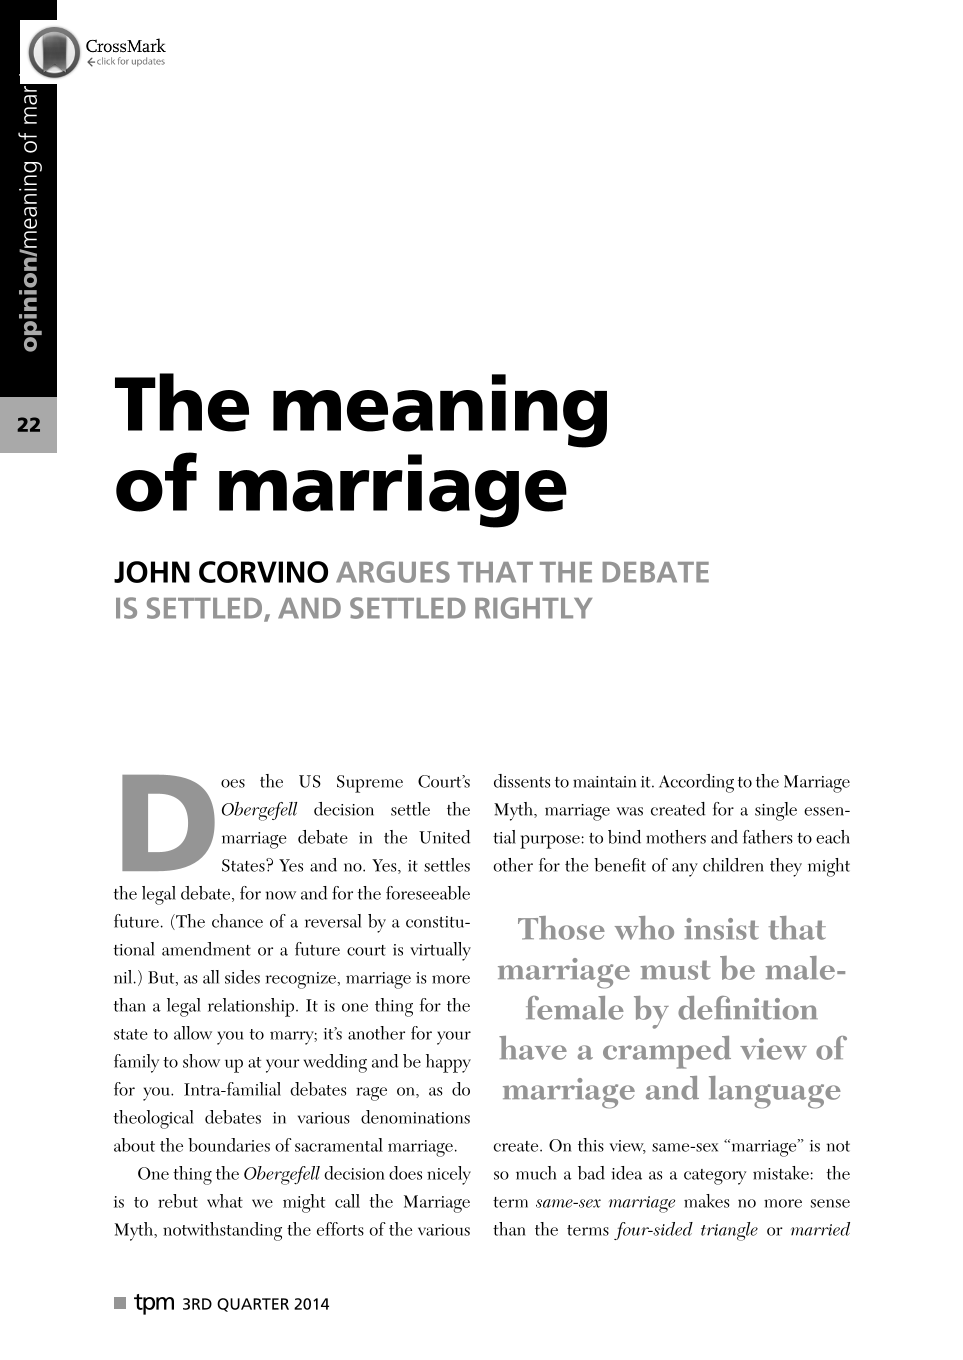 The meaning of marriage: John Corvino argues that the debate is